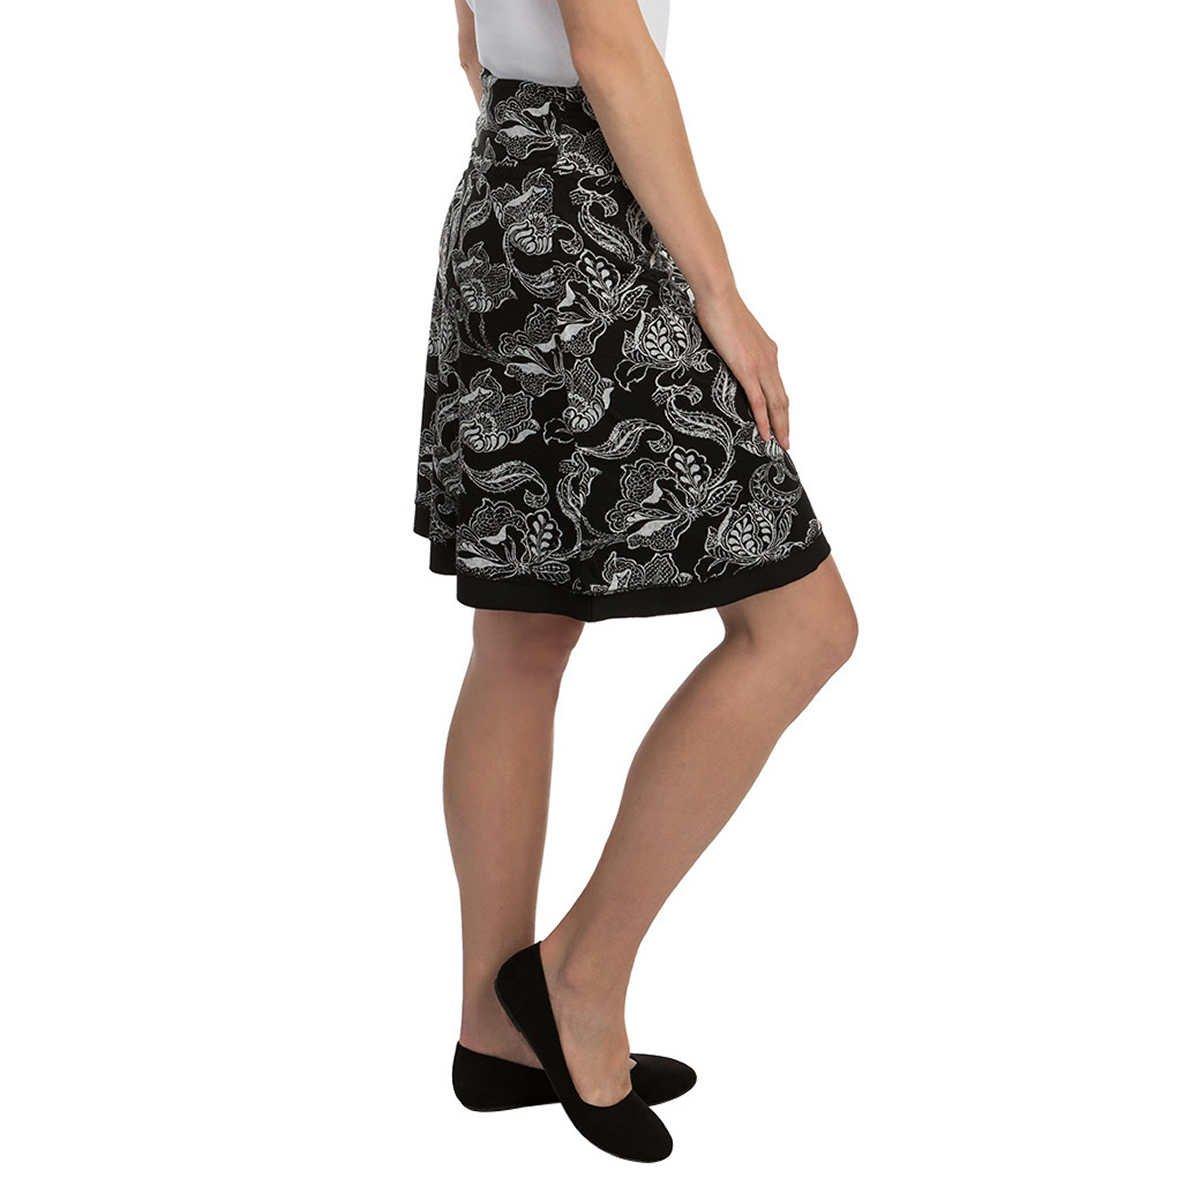 Colorado Clothing Tranquility Women's Reversible Skirt, Black Pattern, Small